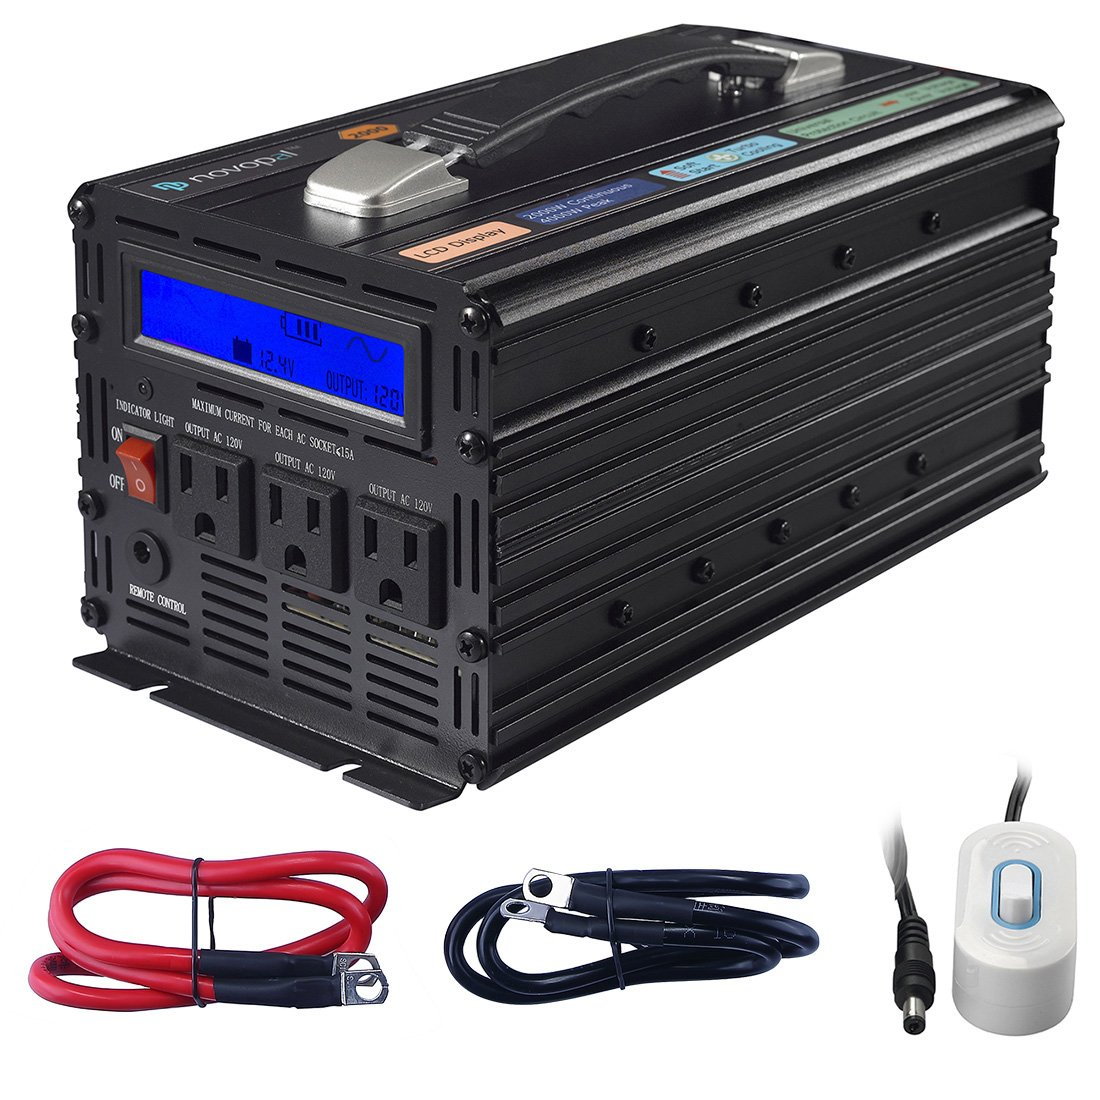 Novopal Power Inverter Pure Sine Wave 1000 Watt Schematic Diagram For Reference 1500 3 Ac Outlets Dc 12v To 120v With Remote Control Big Lcd Displaysurge 3000w